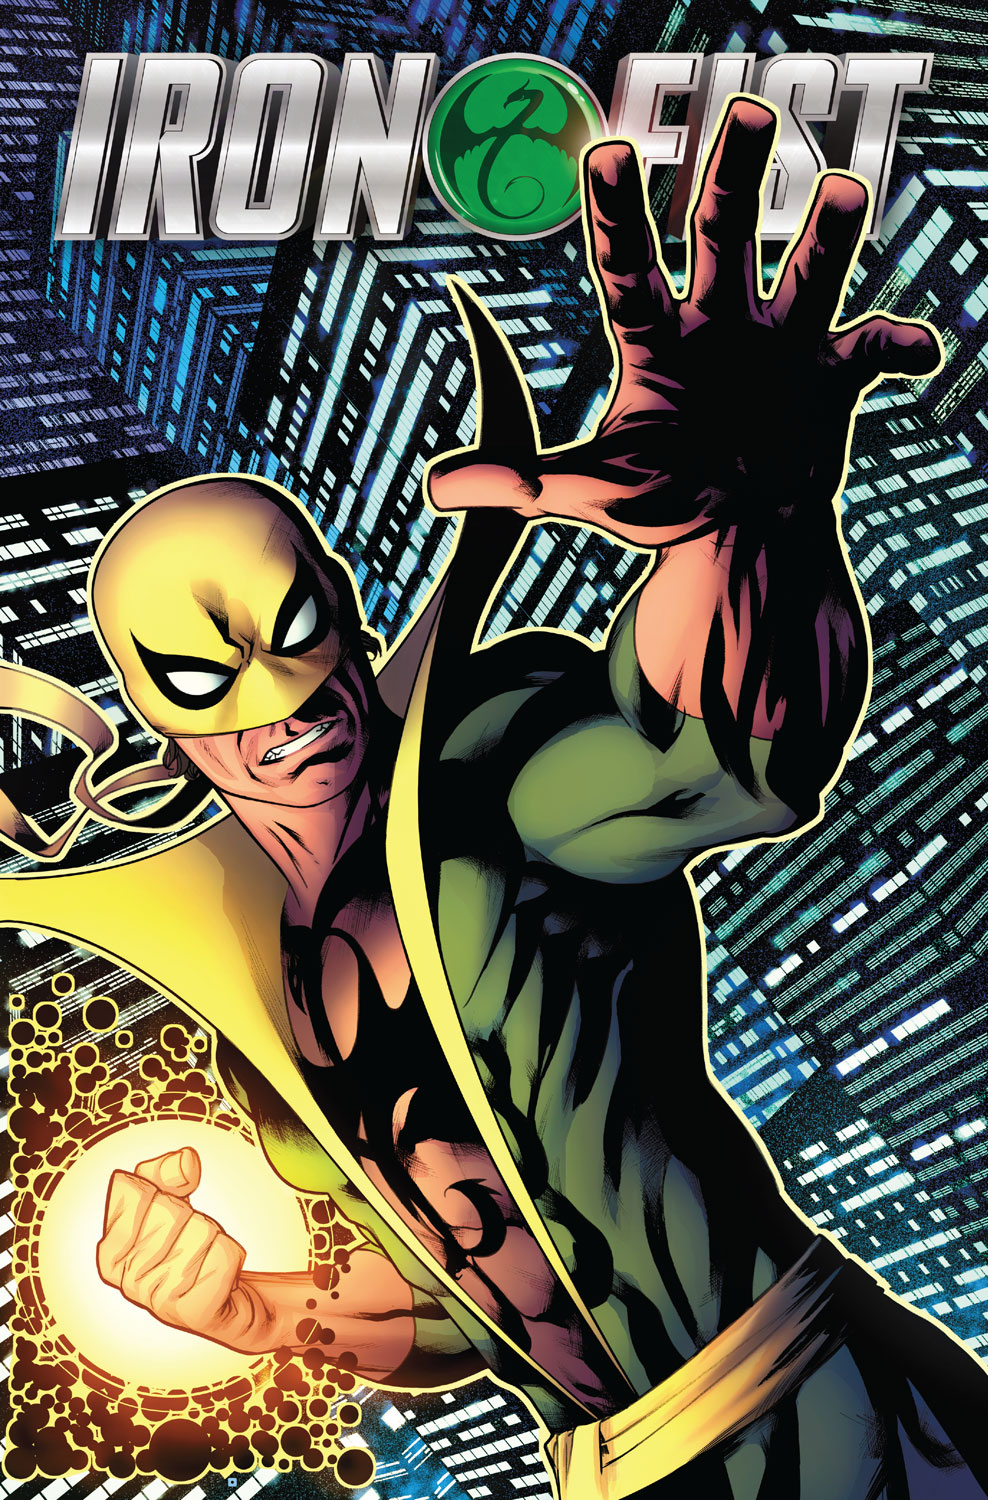 Marvel Preview: Iron Fist #1 Exclusive Variants